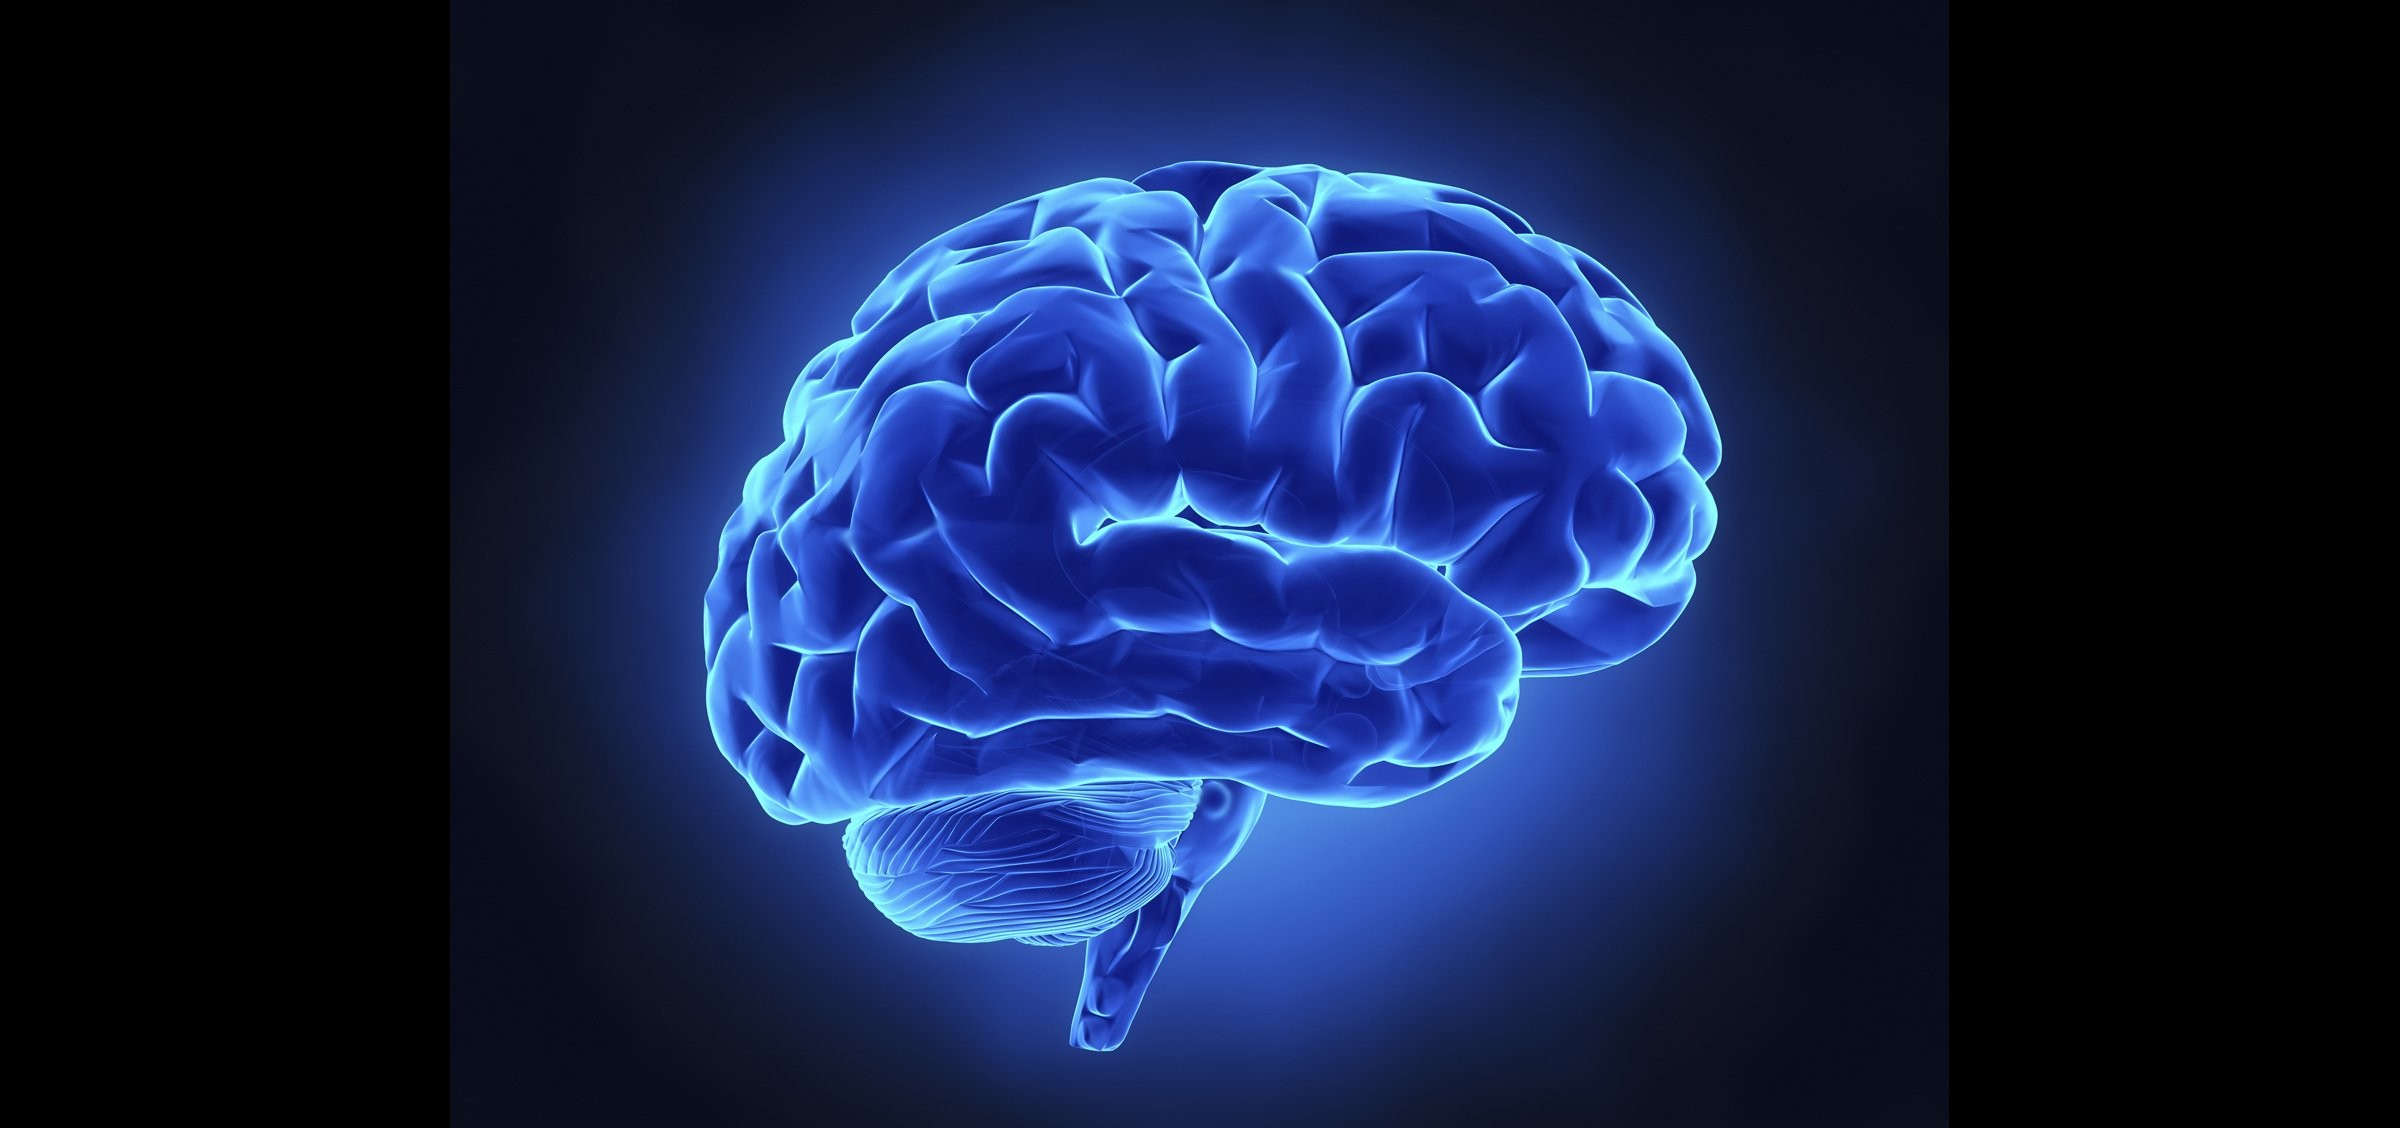 Brain wallpaper download free beautiful backgrounds for - Brain wallpaper 3d ...